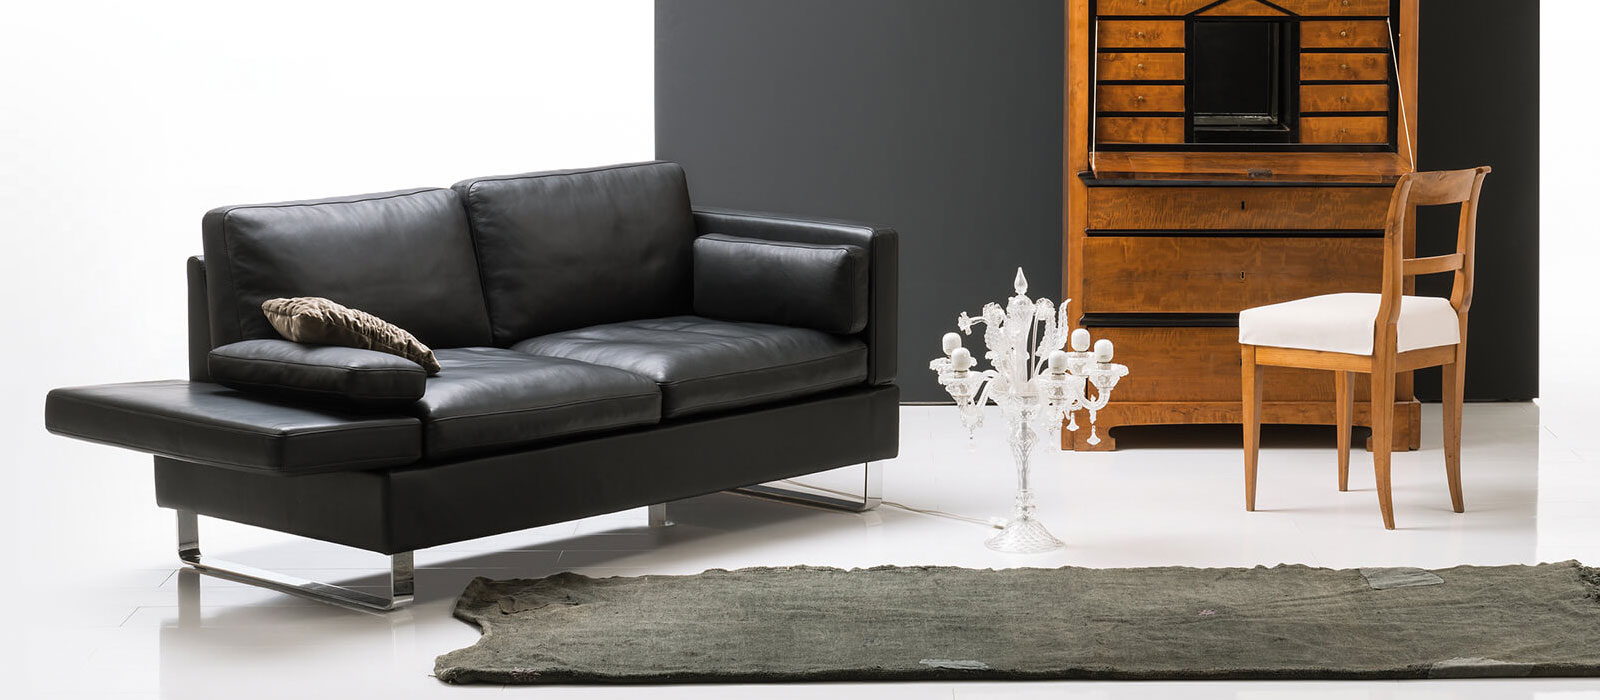 schlafsofa schmal affordable schlafsofa schmal with. Black Bedroom Furniture Sets. Home Design Ideas